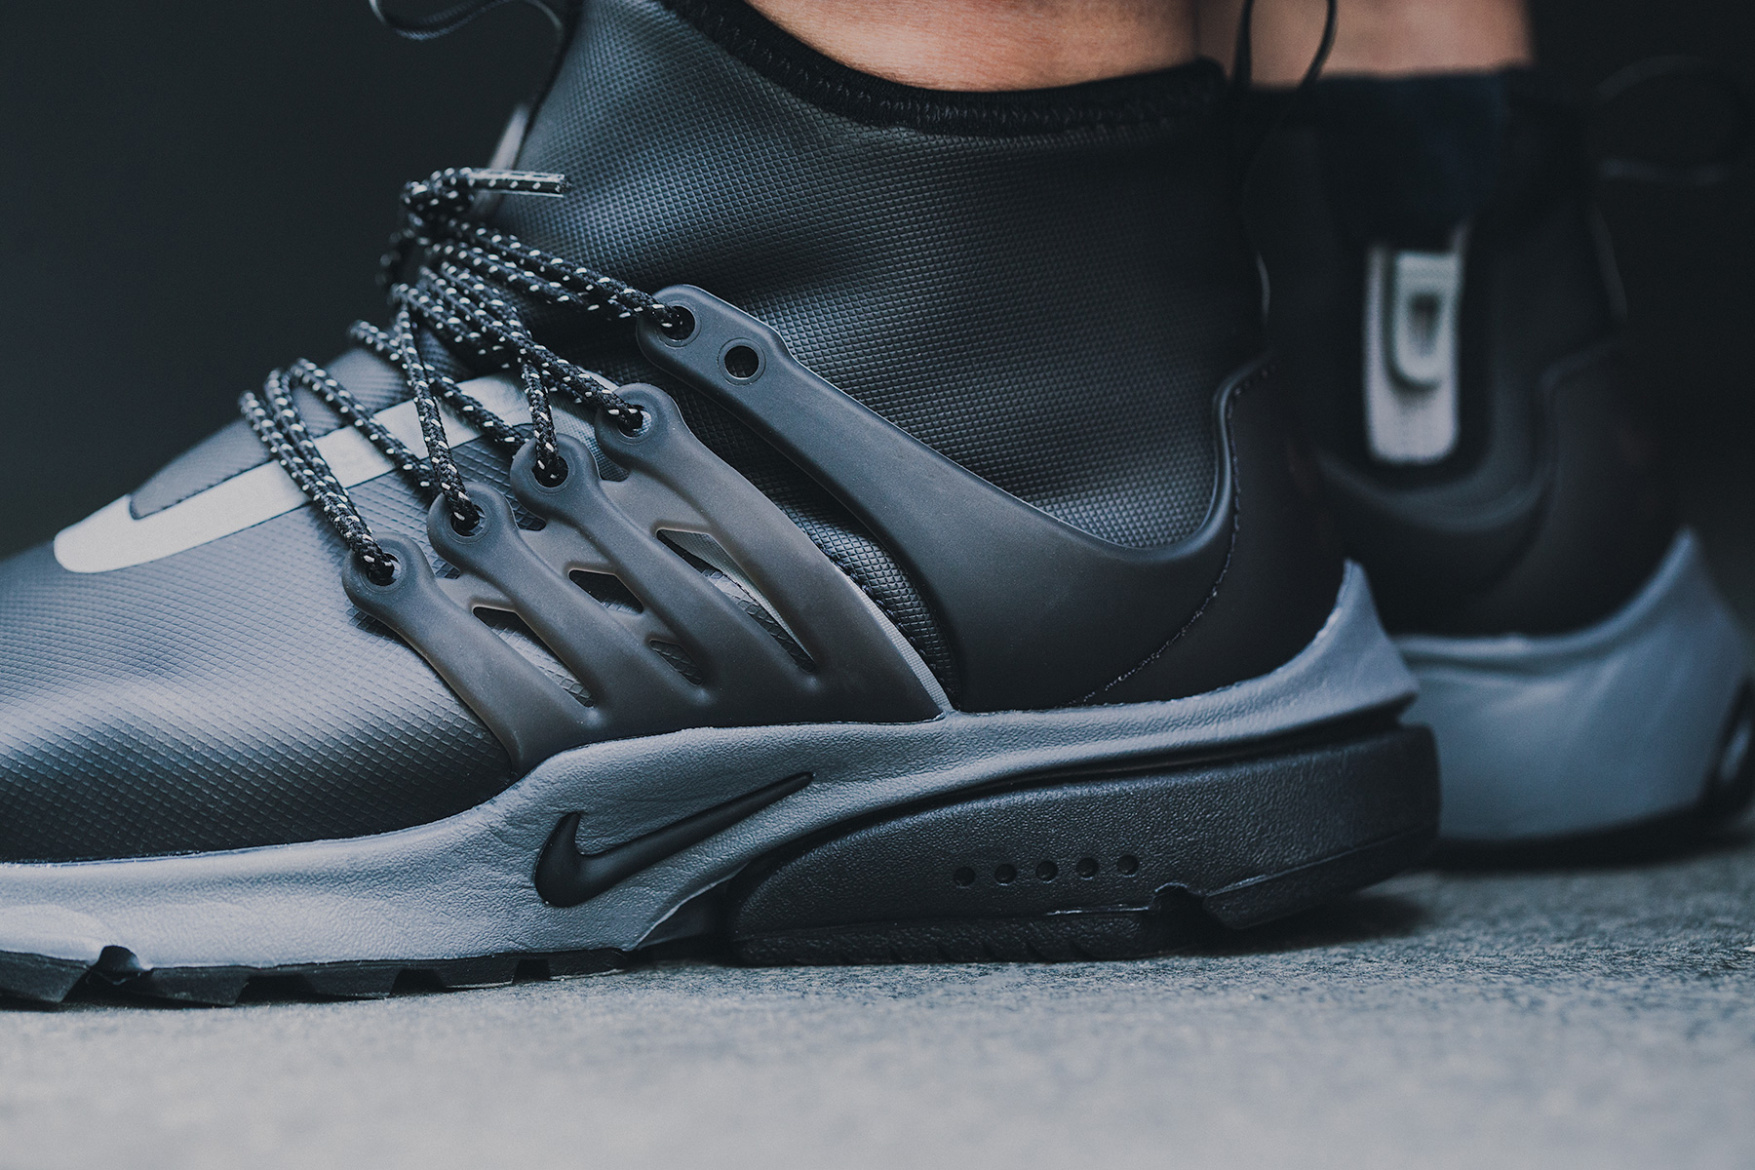 Nike Air Presto Mid Utility - TRENDS periodical